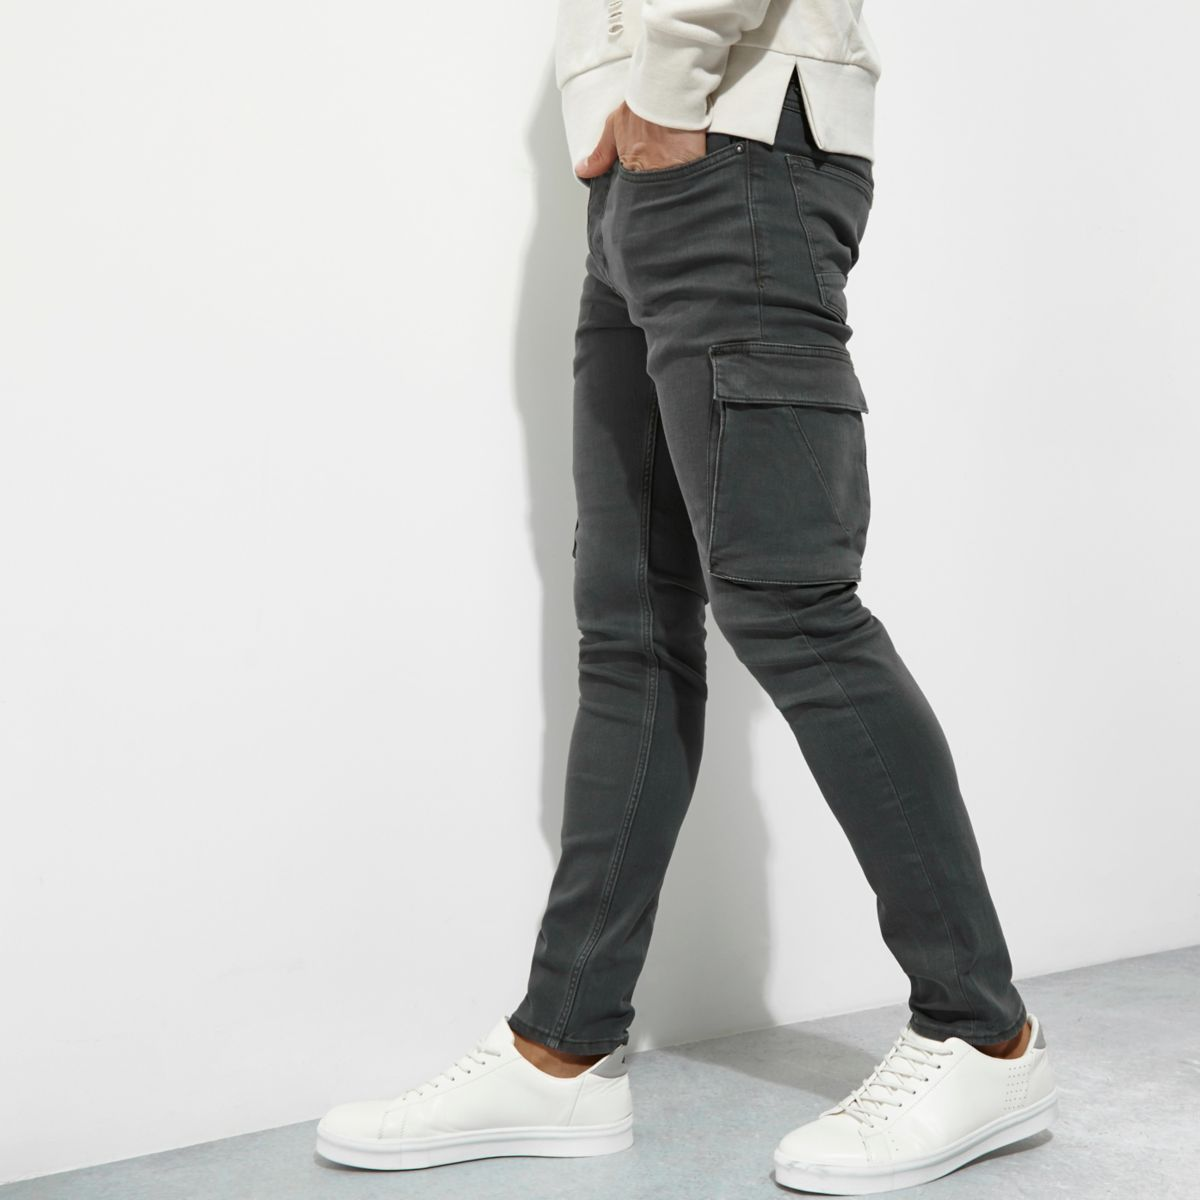 Find skinny cargo pants at Macy's Macy's Presents: The Edit - A curated mix of fashion and inspiration Check It Out Free Shipping with $49 purchase + Free Store Pickup.